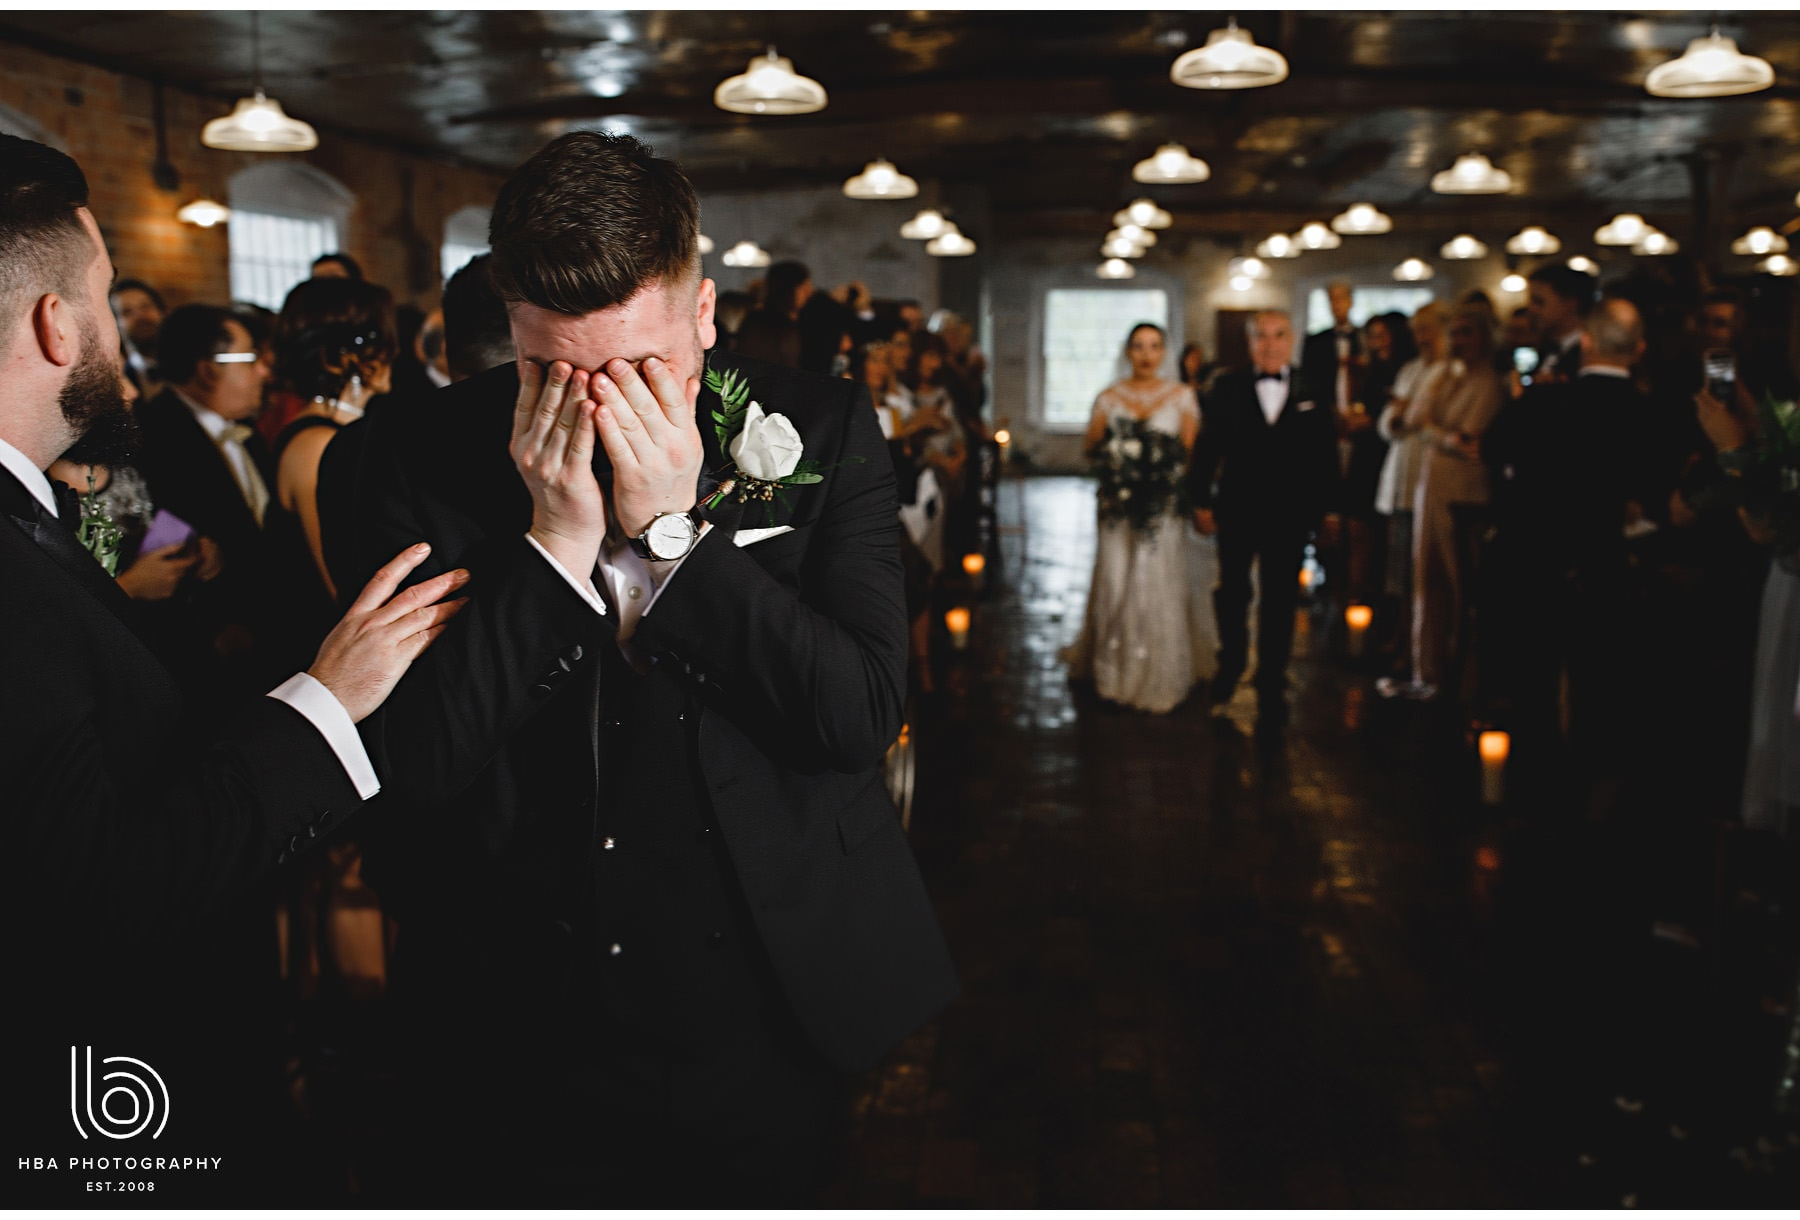 the groom in tears as he sees his bride for the first time